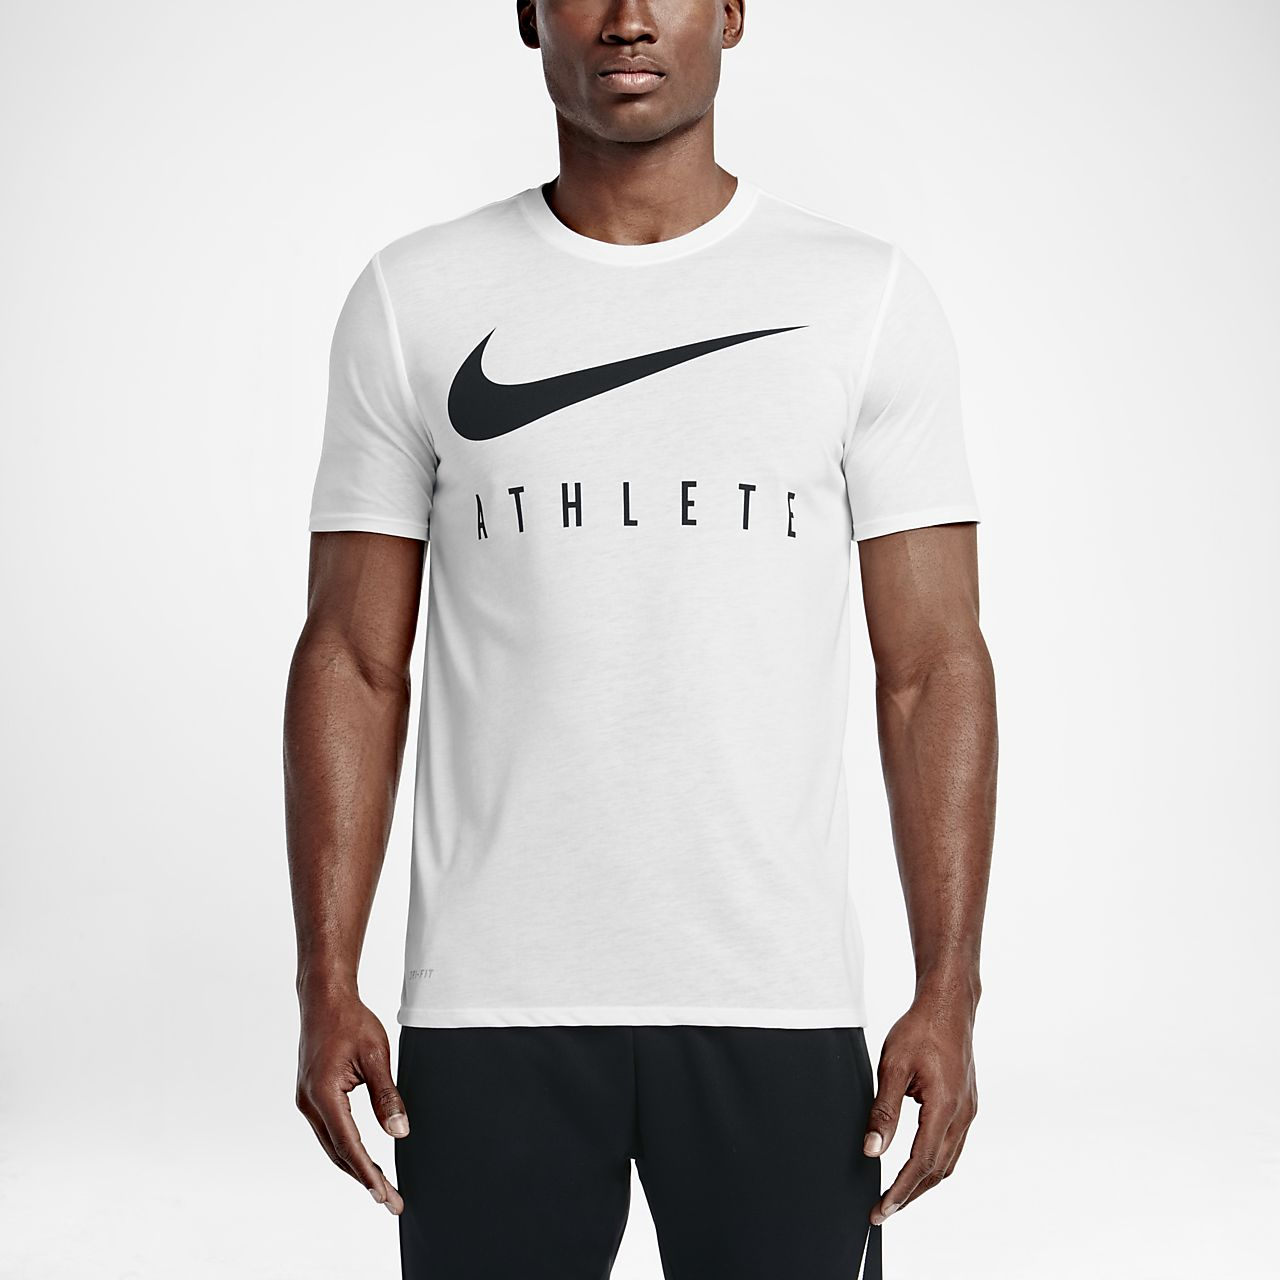 ... Nike Swoosh Athlete Men's T-Shirt